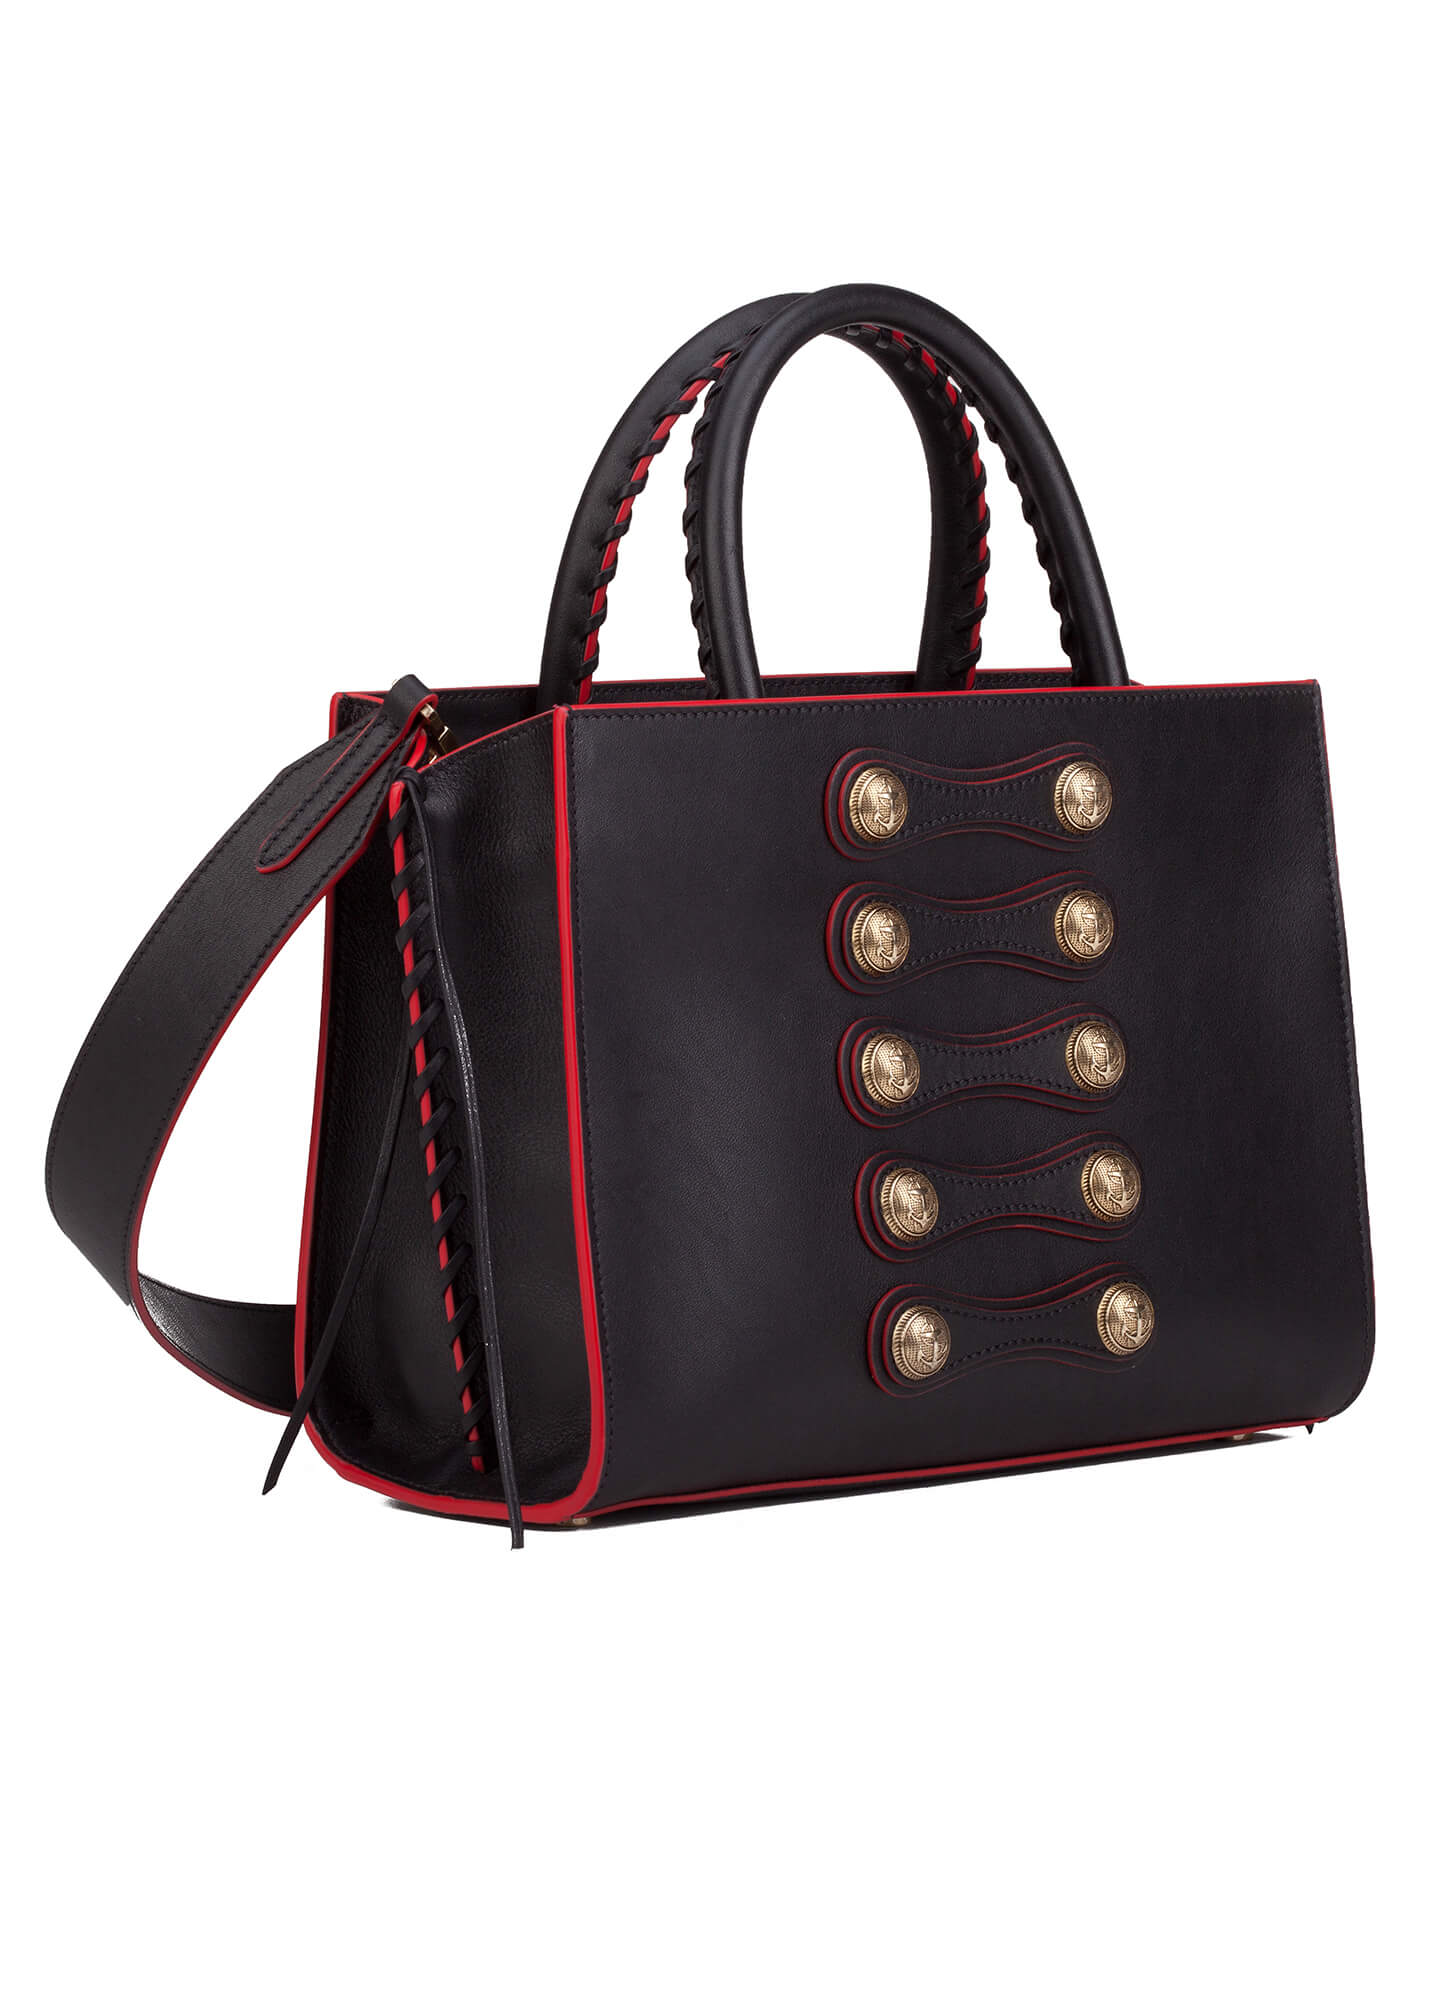 On Detailed Bag In Black Leather Official Pura Lopez